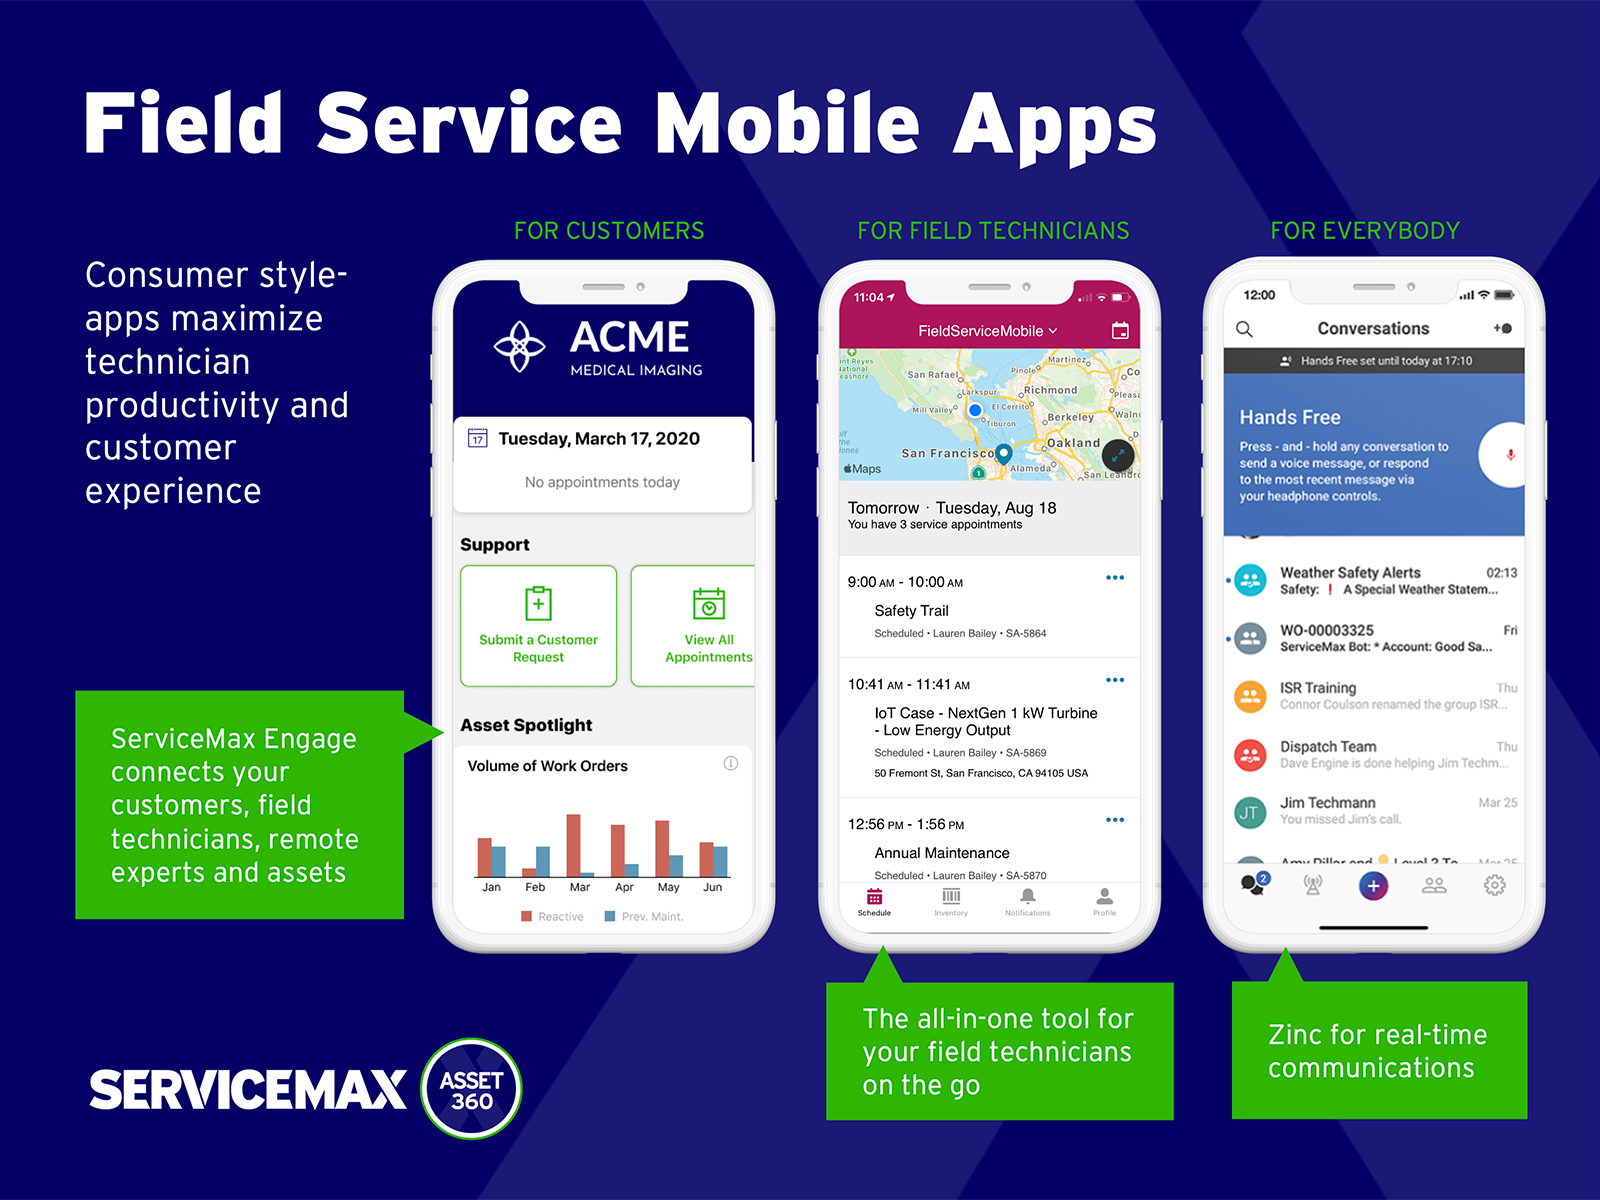 ServiceMax Software - The Salesforce Mobile Field Service App for Android and iOS is an all-in-one tool for field service technicians on the go. This enterprise-class mobile experience leverages Salesforce in a lightweight design optimized for a modern mobile workforce.